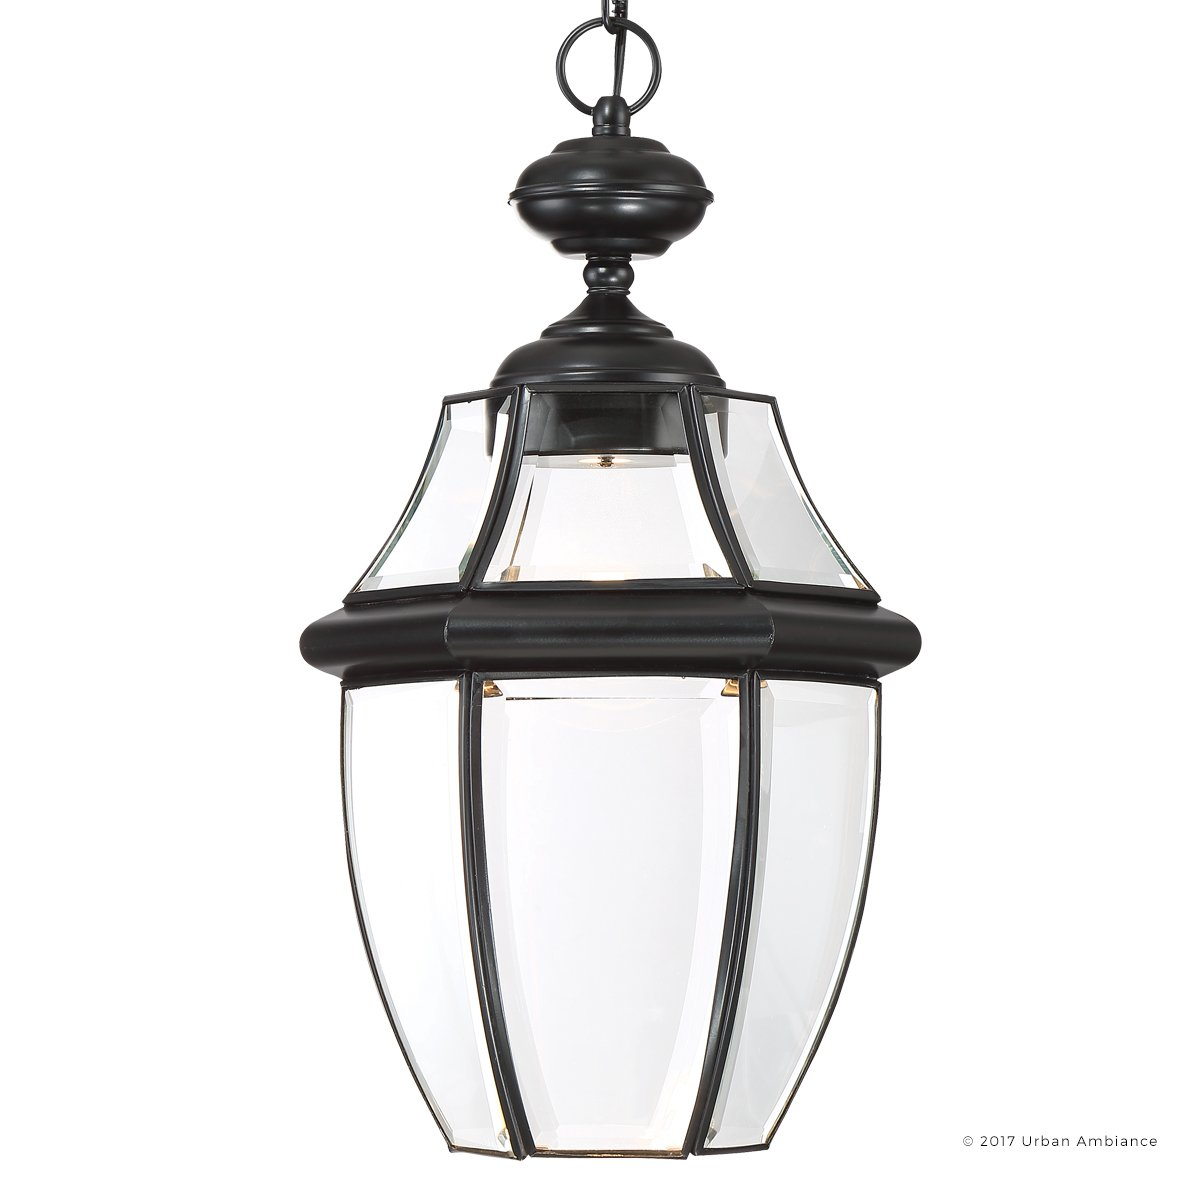 Luxury Colonial Outdoor LED Pendant Light, Large Size: 19''H x 11''W, with Tudor Style Elements, High-End Black Silk Finish and Beveled Glass, Integrated LED Technology, UQL1164 by Urban Ambiance by Urban Ambiance